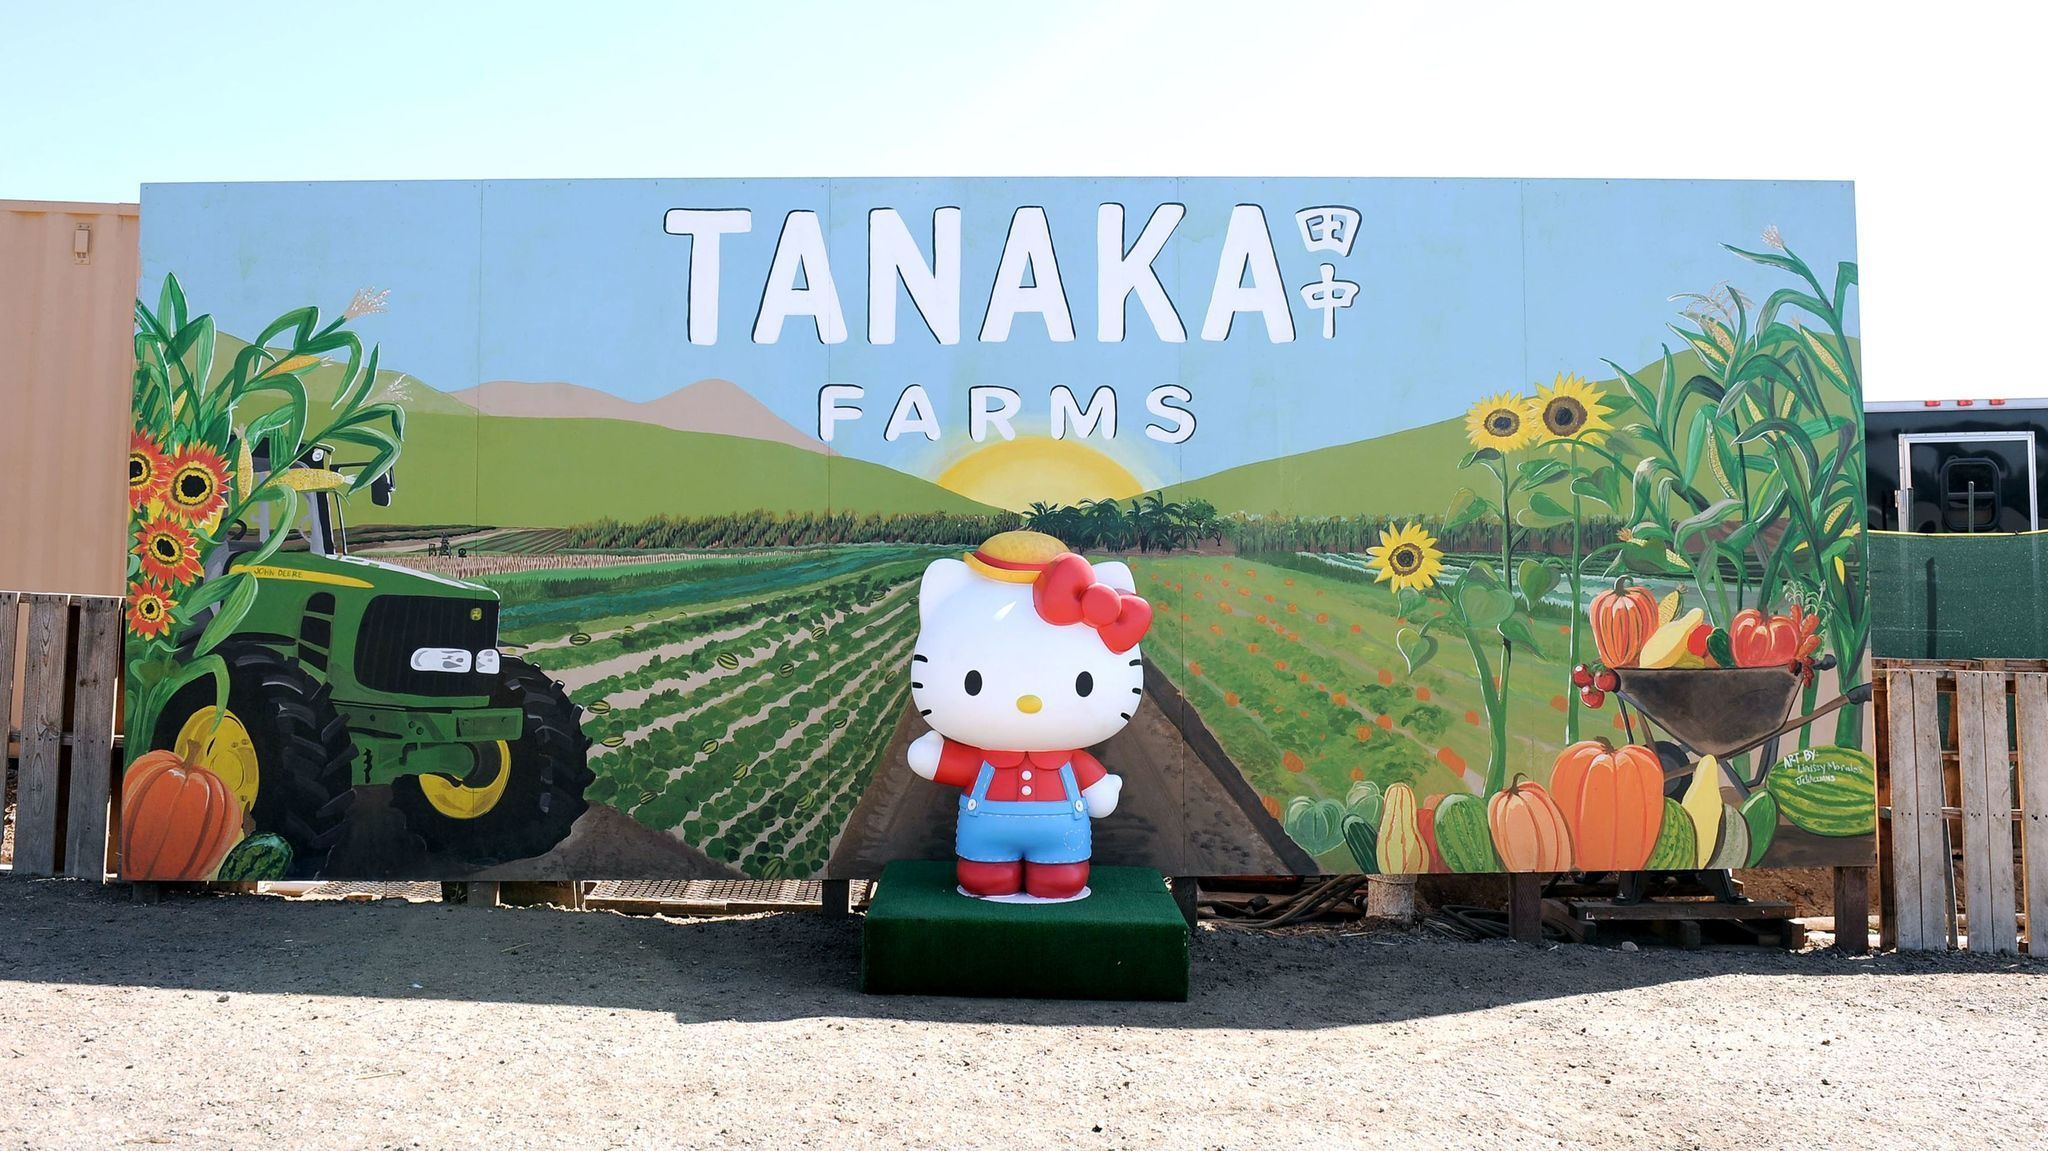 Hello Kitty and other Sanrio characters continue to pop up alongside food in O.C. | The Los Angeles Times